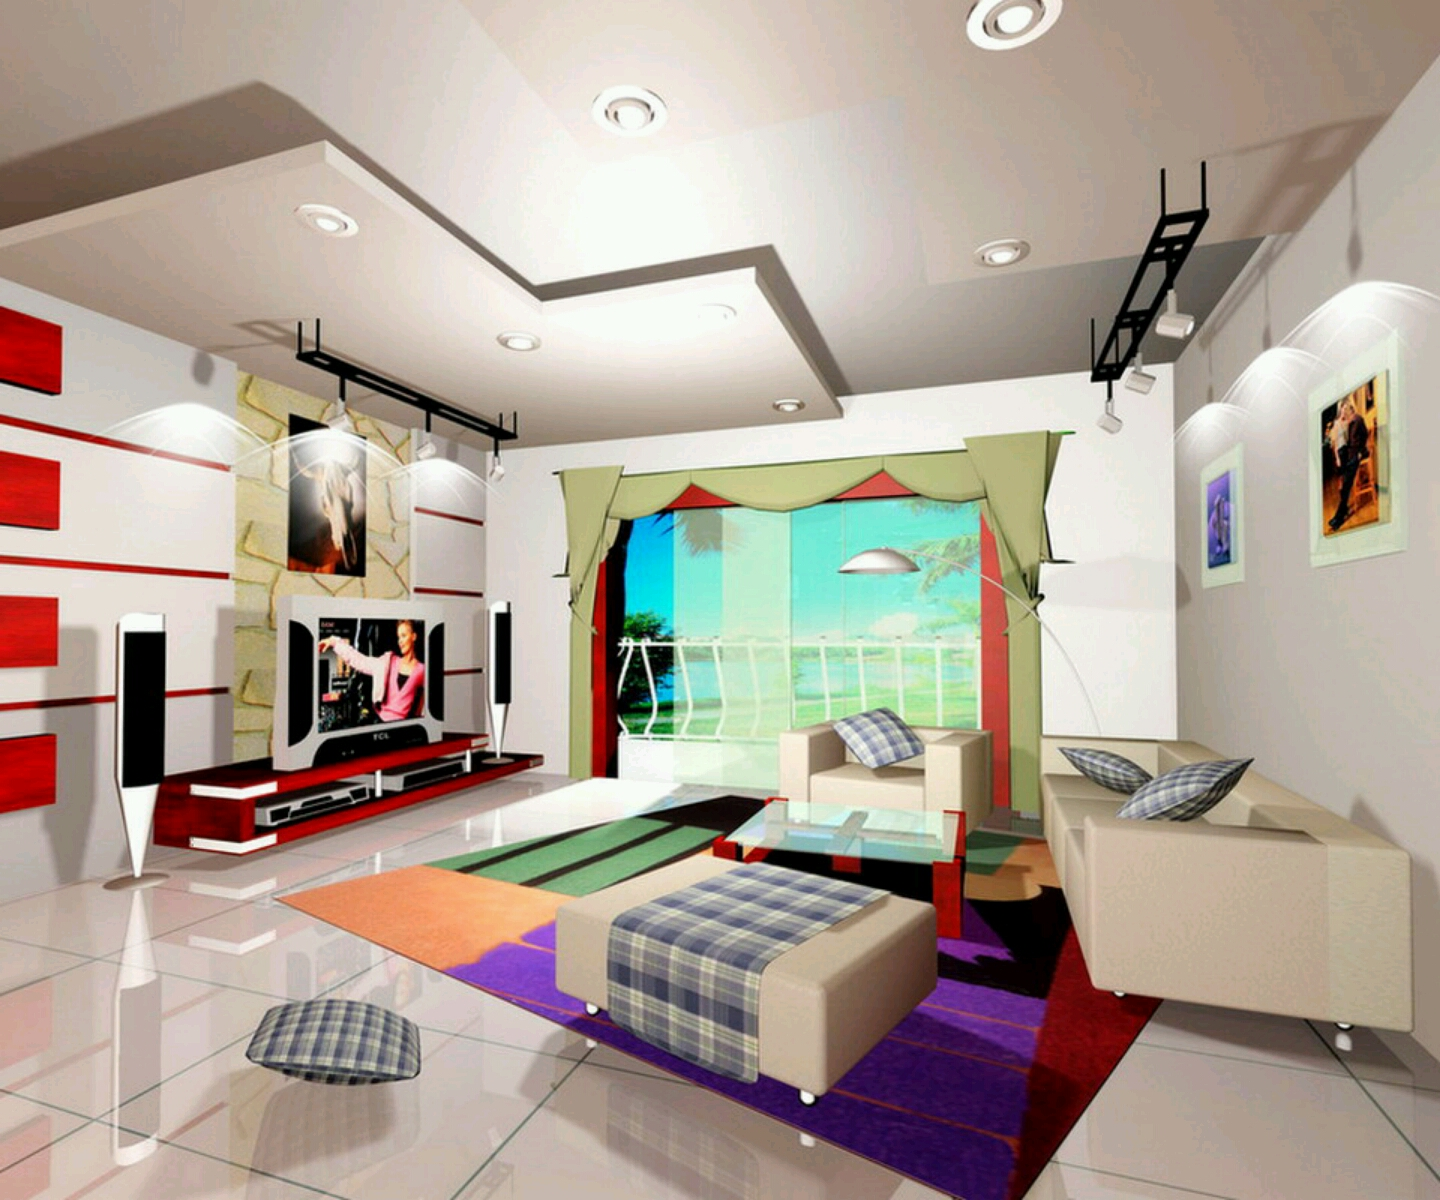 Ultra modern living rooms interior designs decoration for New design interior living room